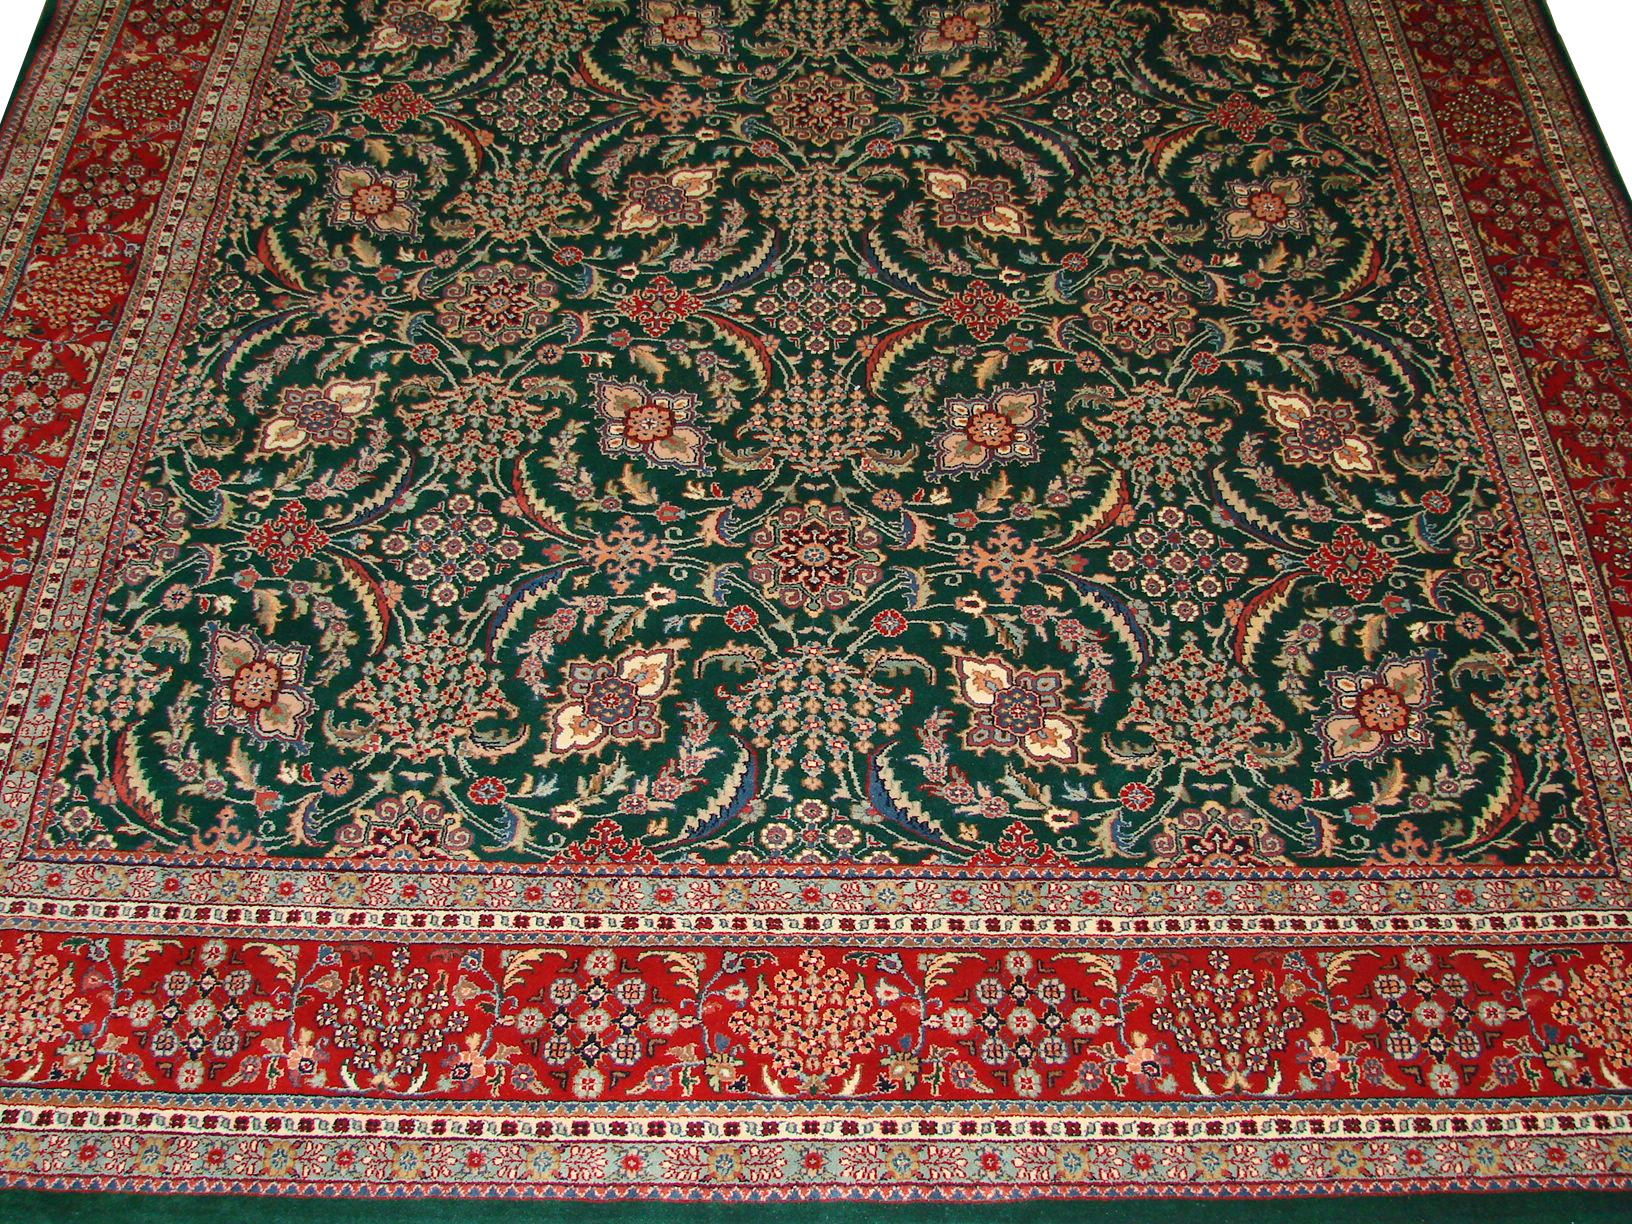 9x12 Traditional Hand Knotted Wool Area Rug - MR0769